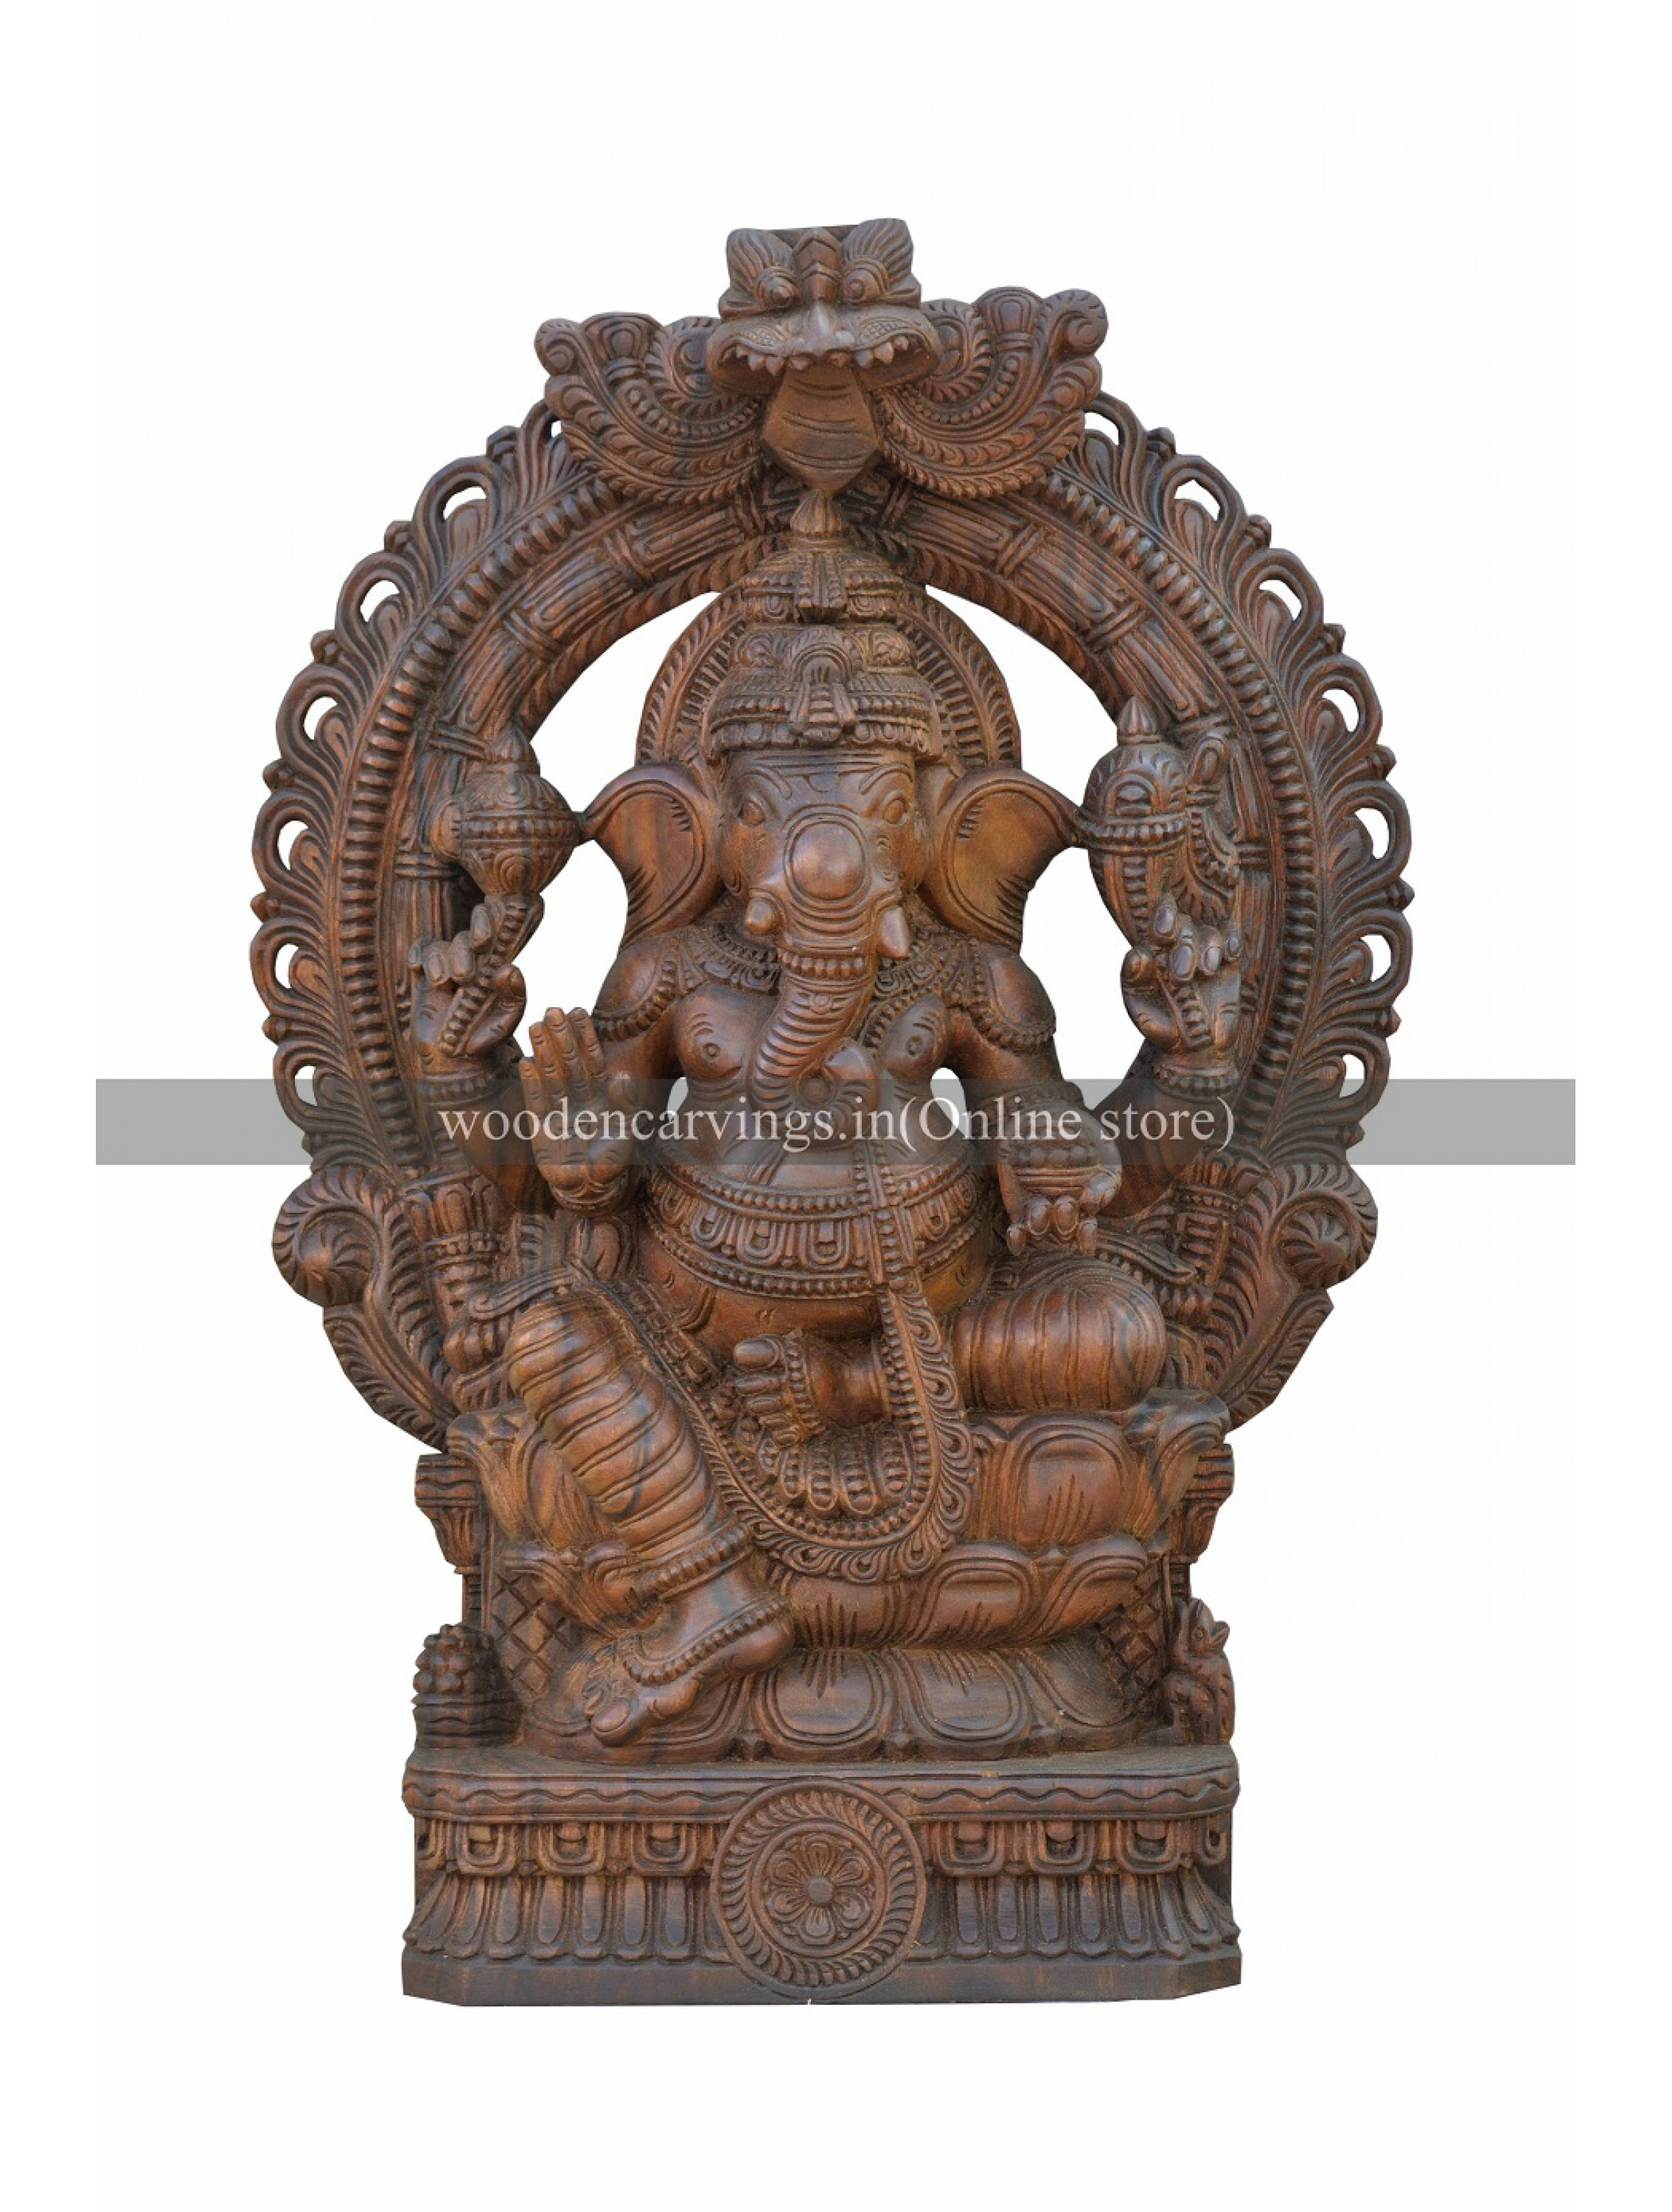 Abhaya Mudra Ganesh Seated On the Lotus Wooden Sculpture